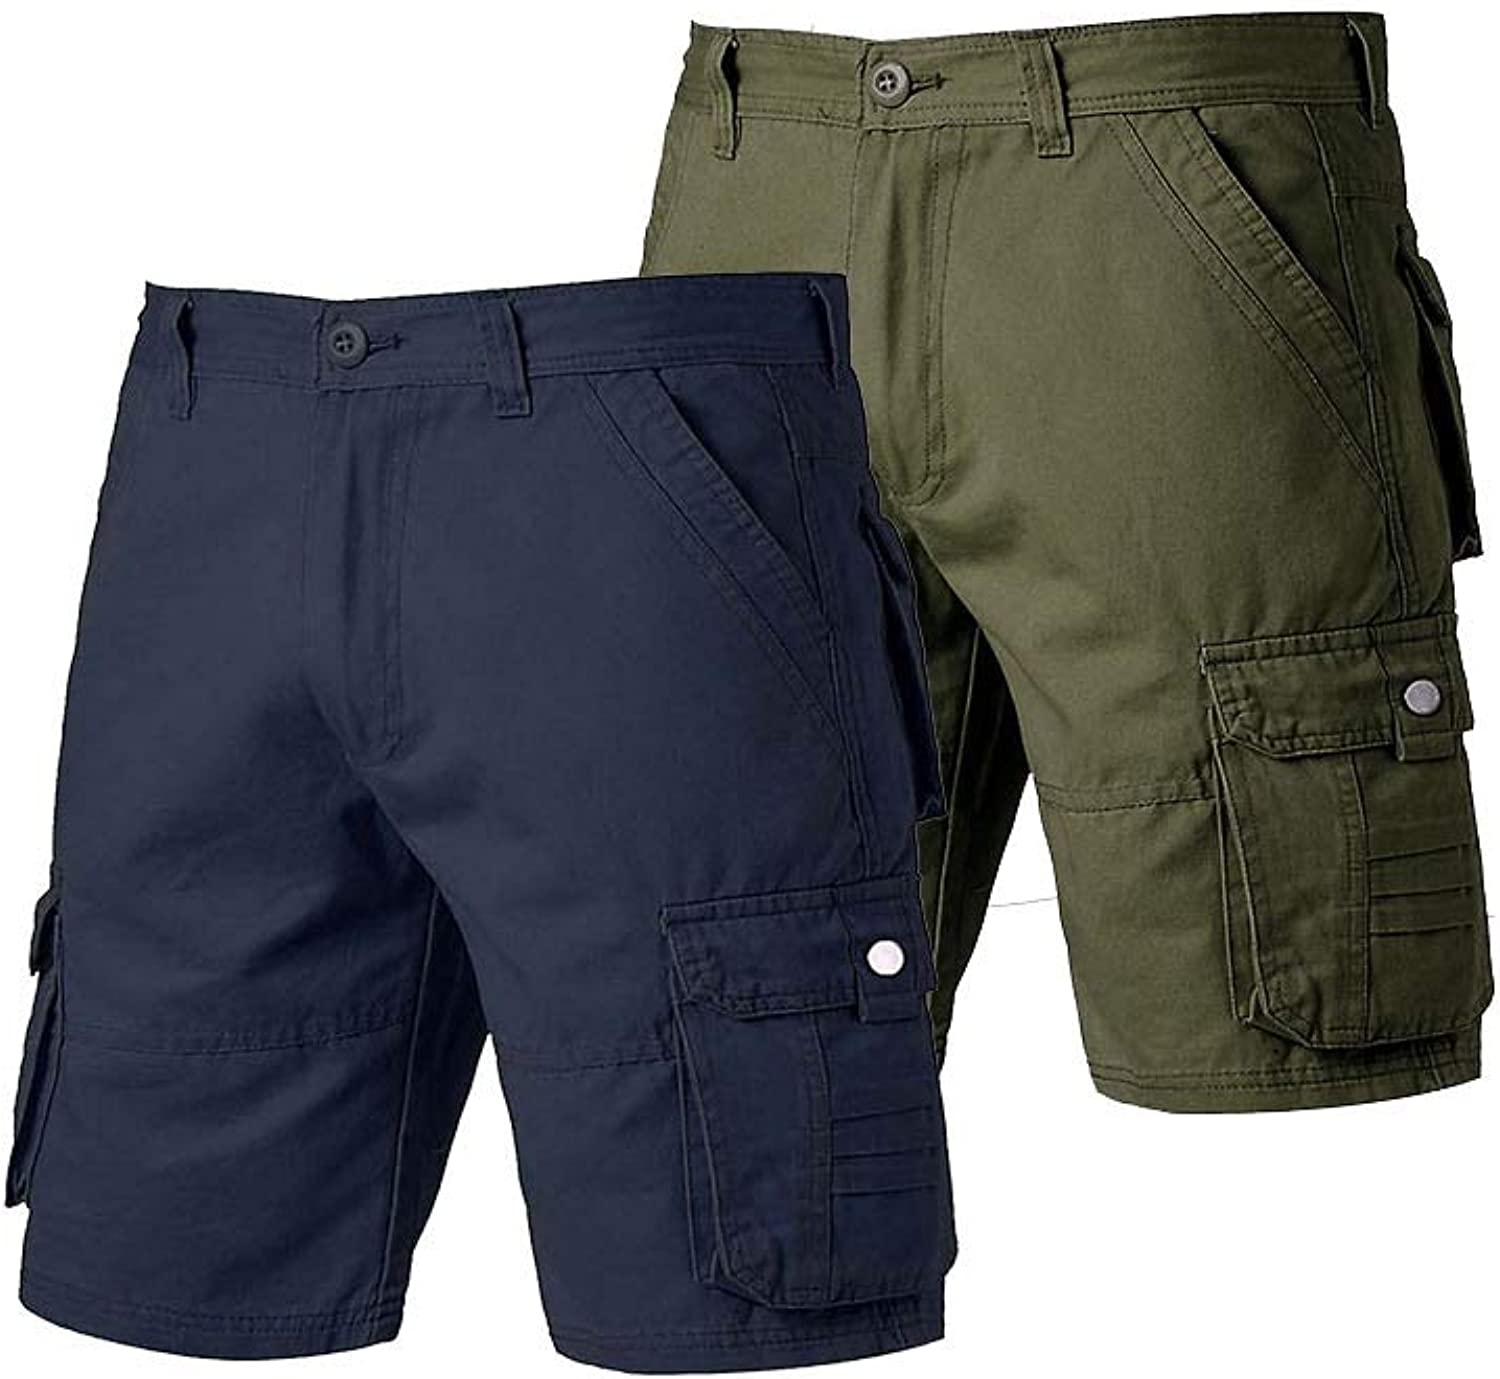 Men's Classic Cargo Shorts 2 Pack Relaxed Fit Stretchy Multi-Pocket Casual